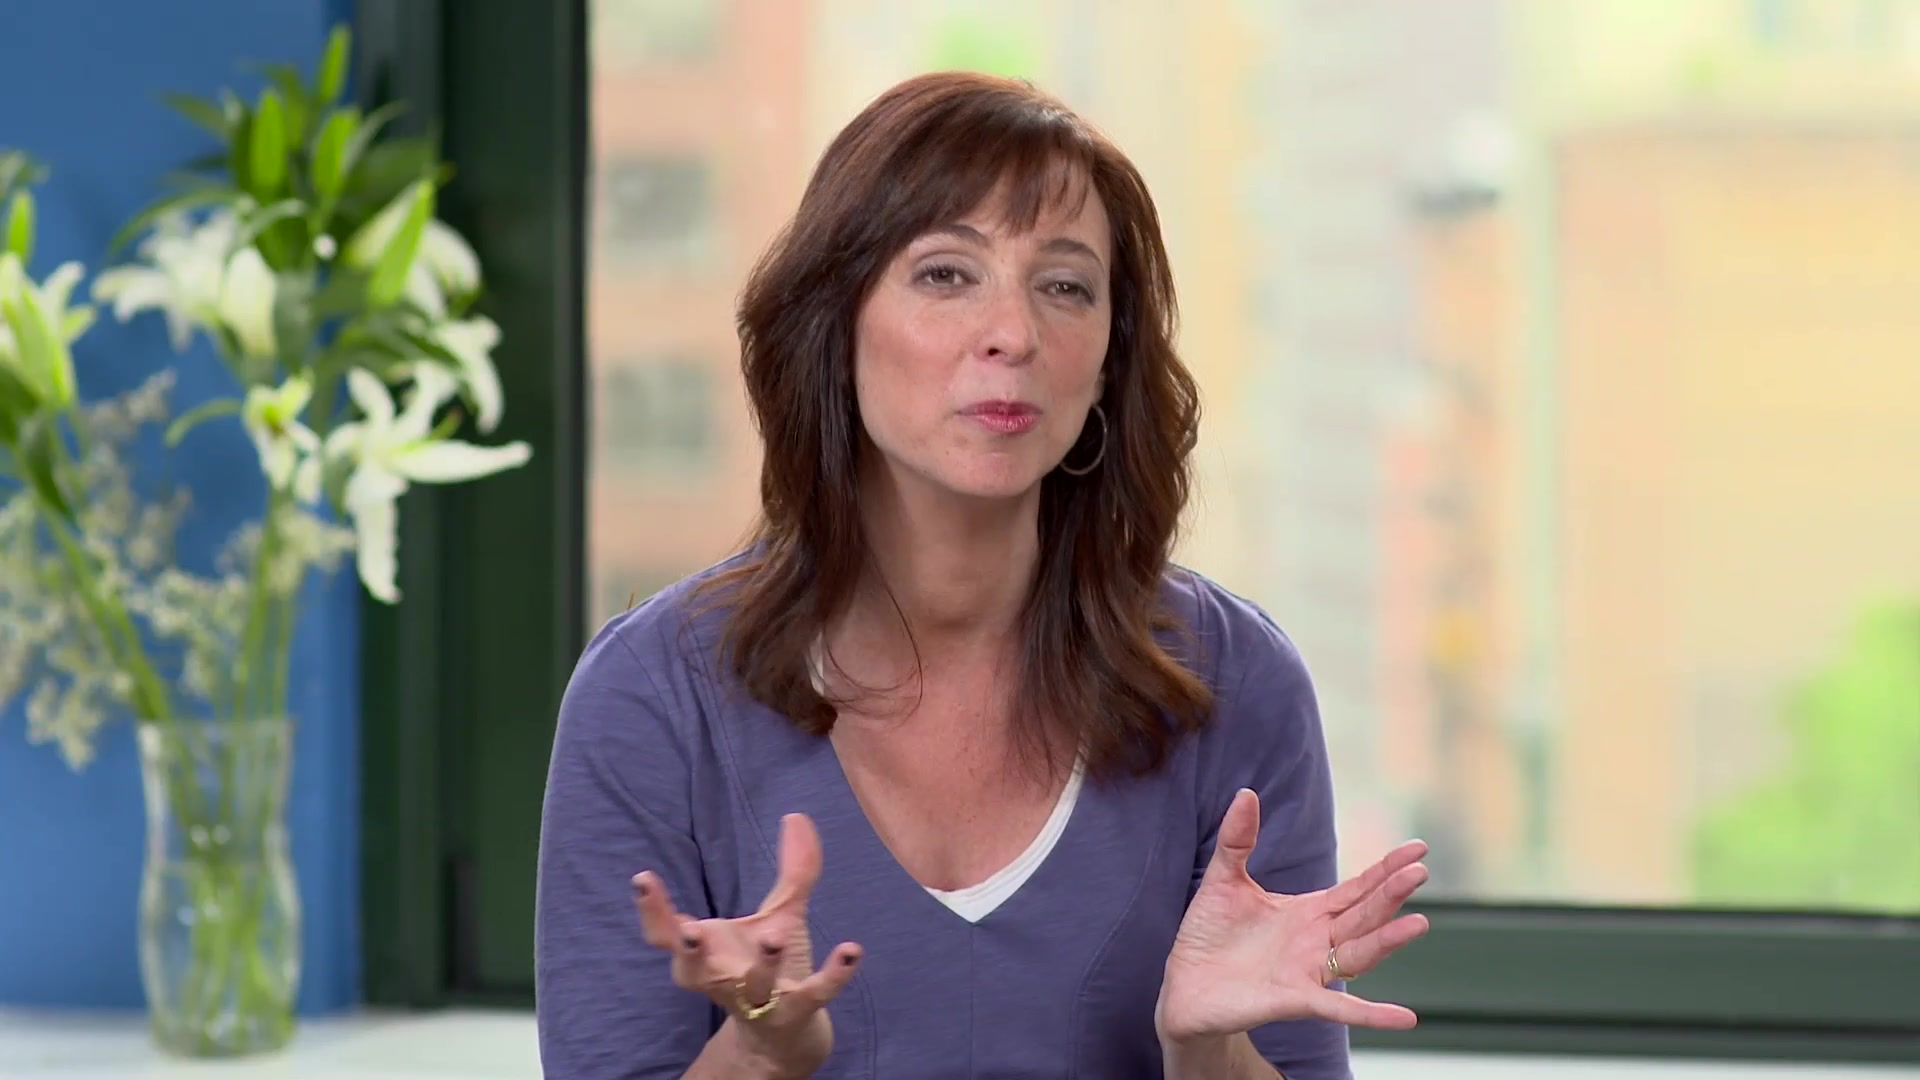 Susan Cain: What Is An Introvert?